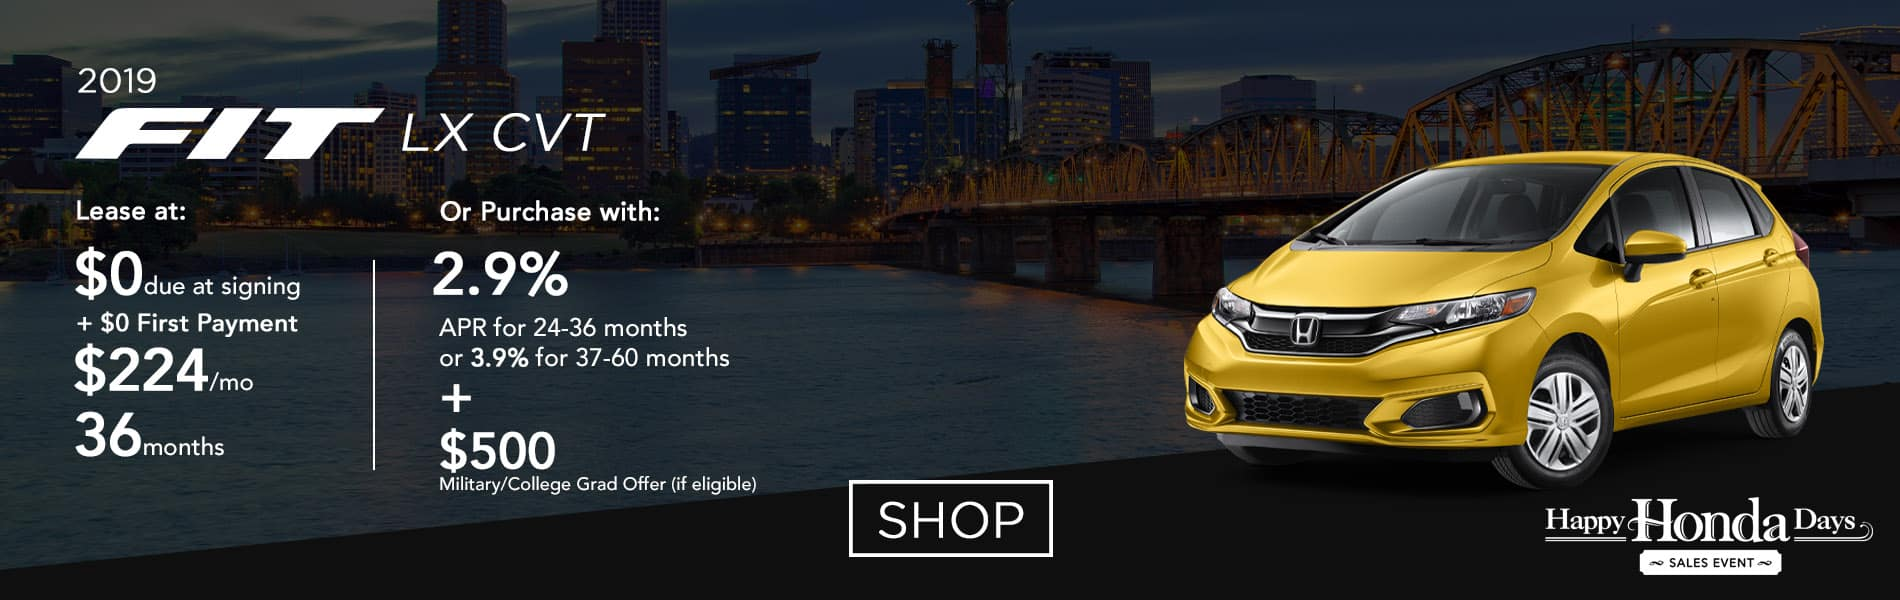 Lease a 2019 Fit LX CVT for $224 per month or purchase with 2.9% APR up to 36 months